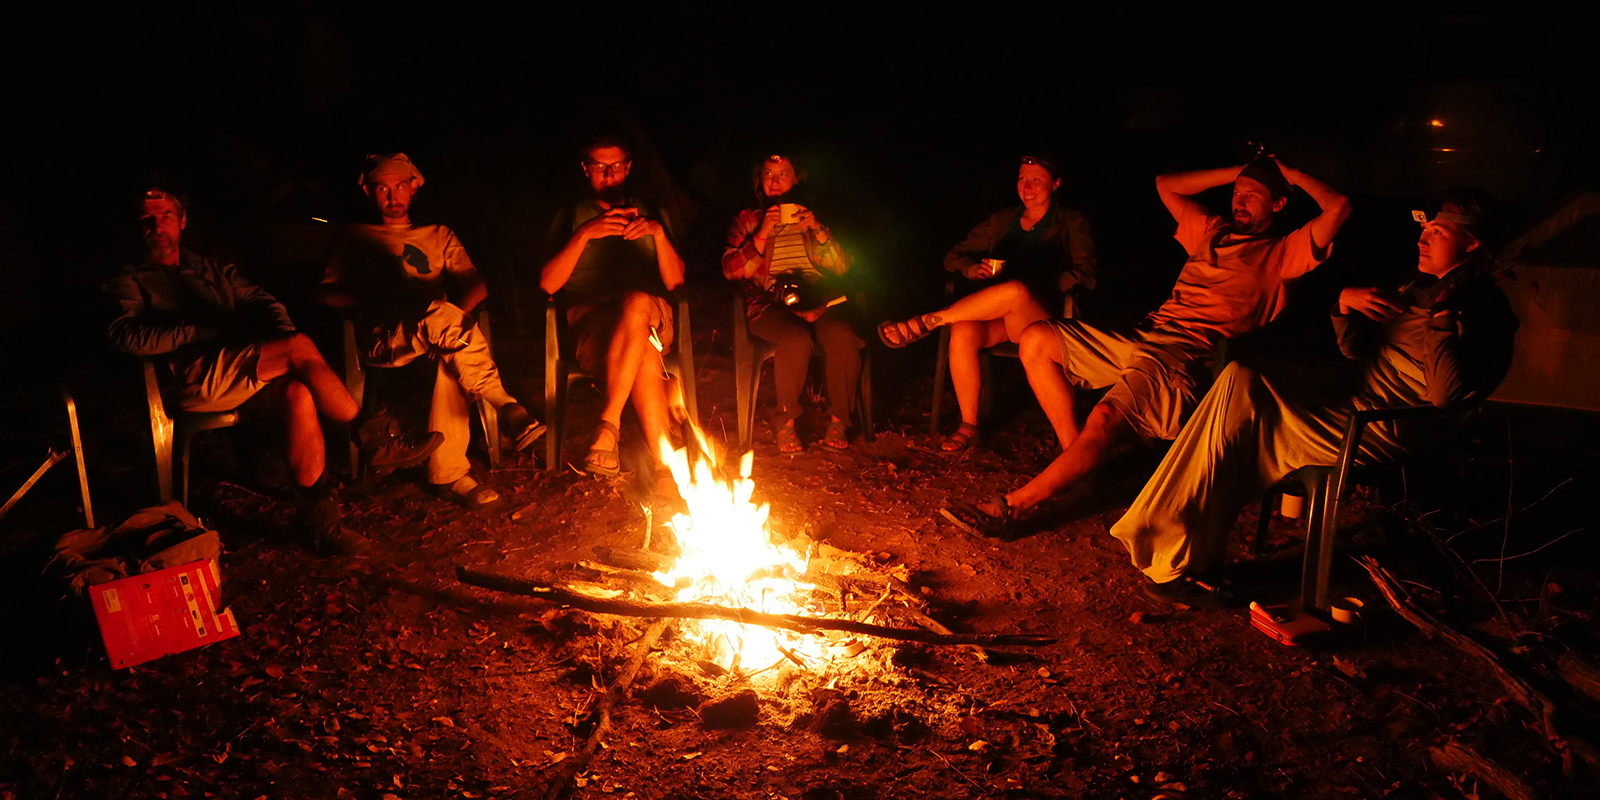 The group sitting around a campfire at night